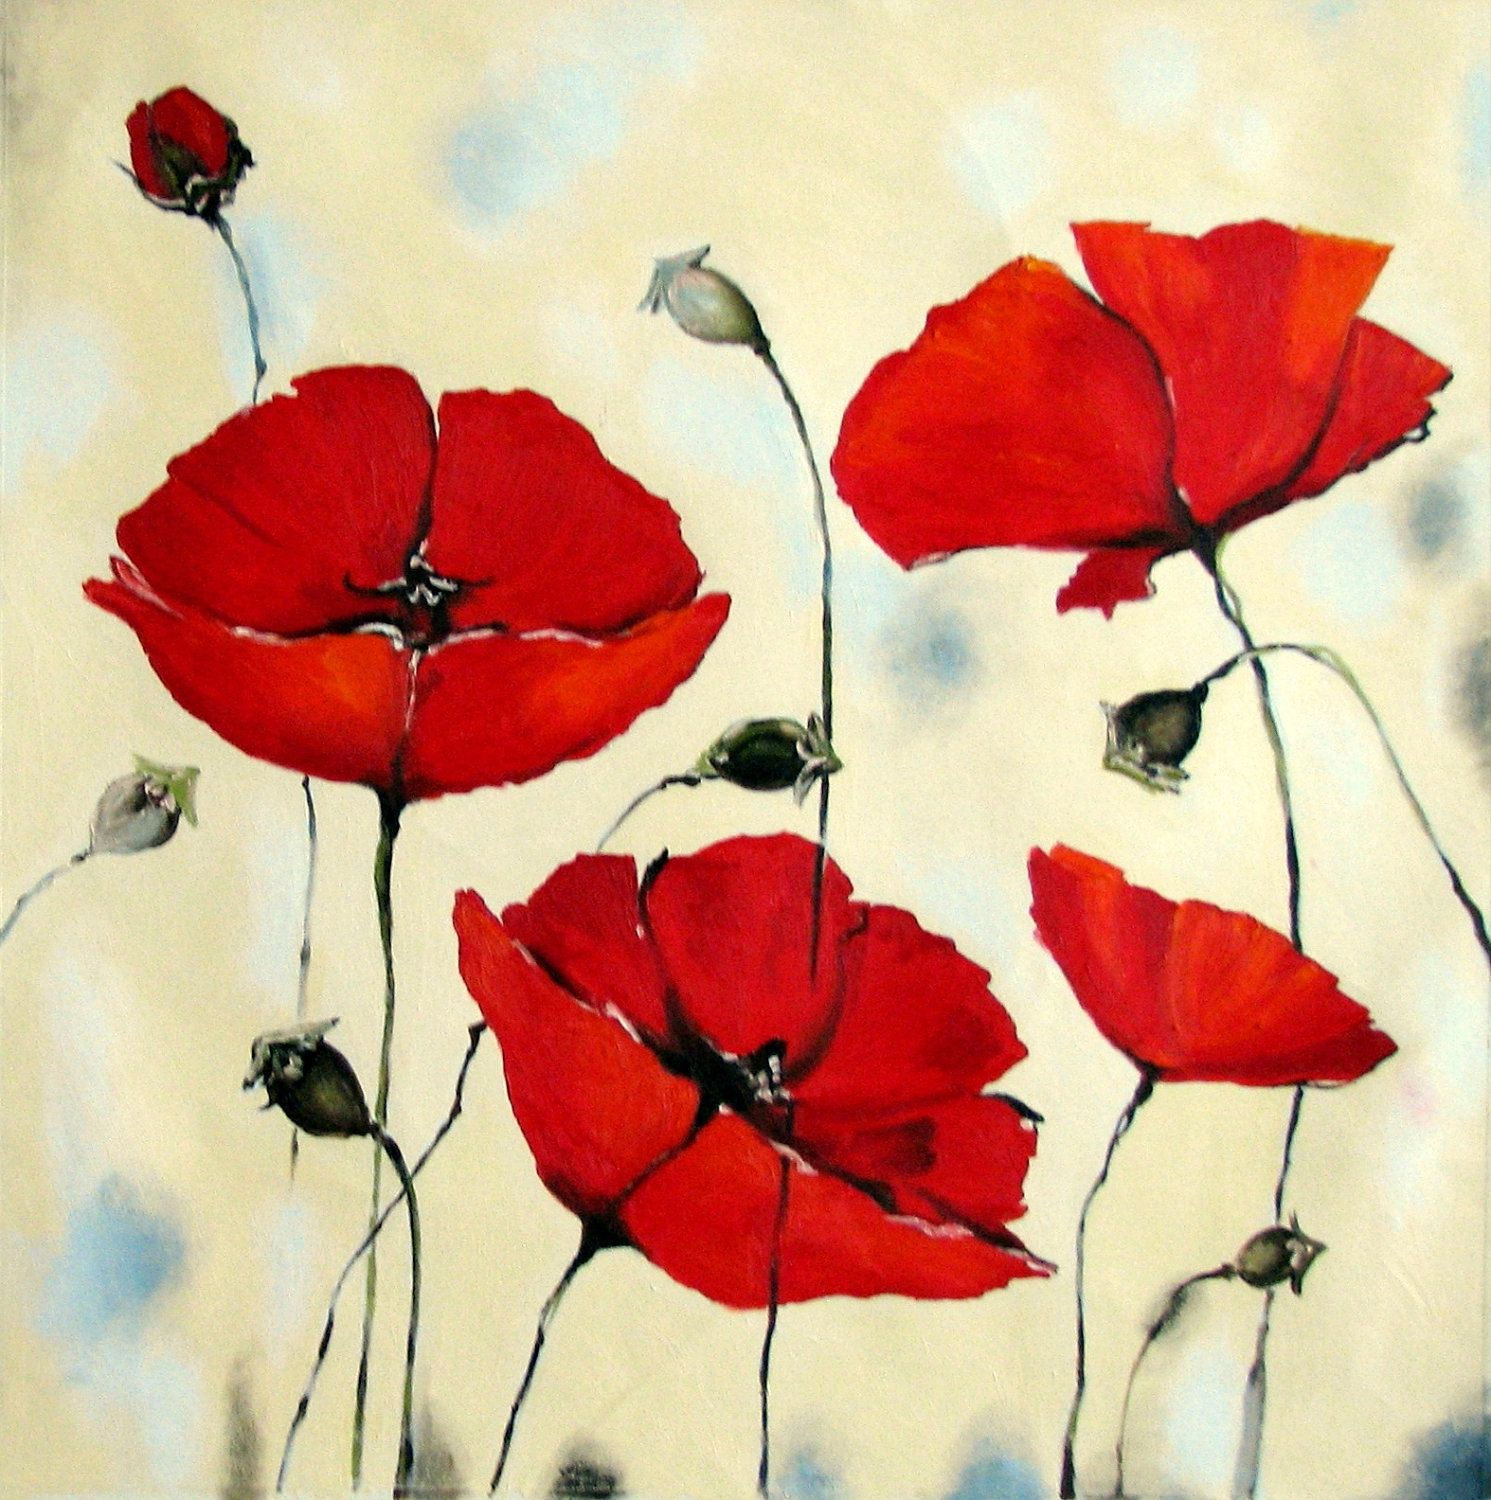 Oil - Acrylic painting Red poppies Flower Impasto Painting - mixed media - Huge 37 x 37 - XXL - Certificated. $195.00, via Etsy.